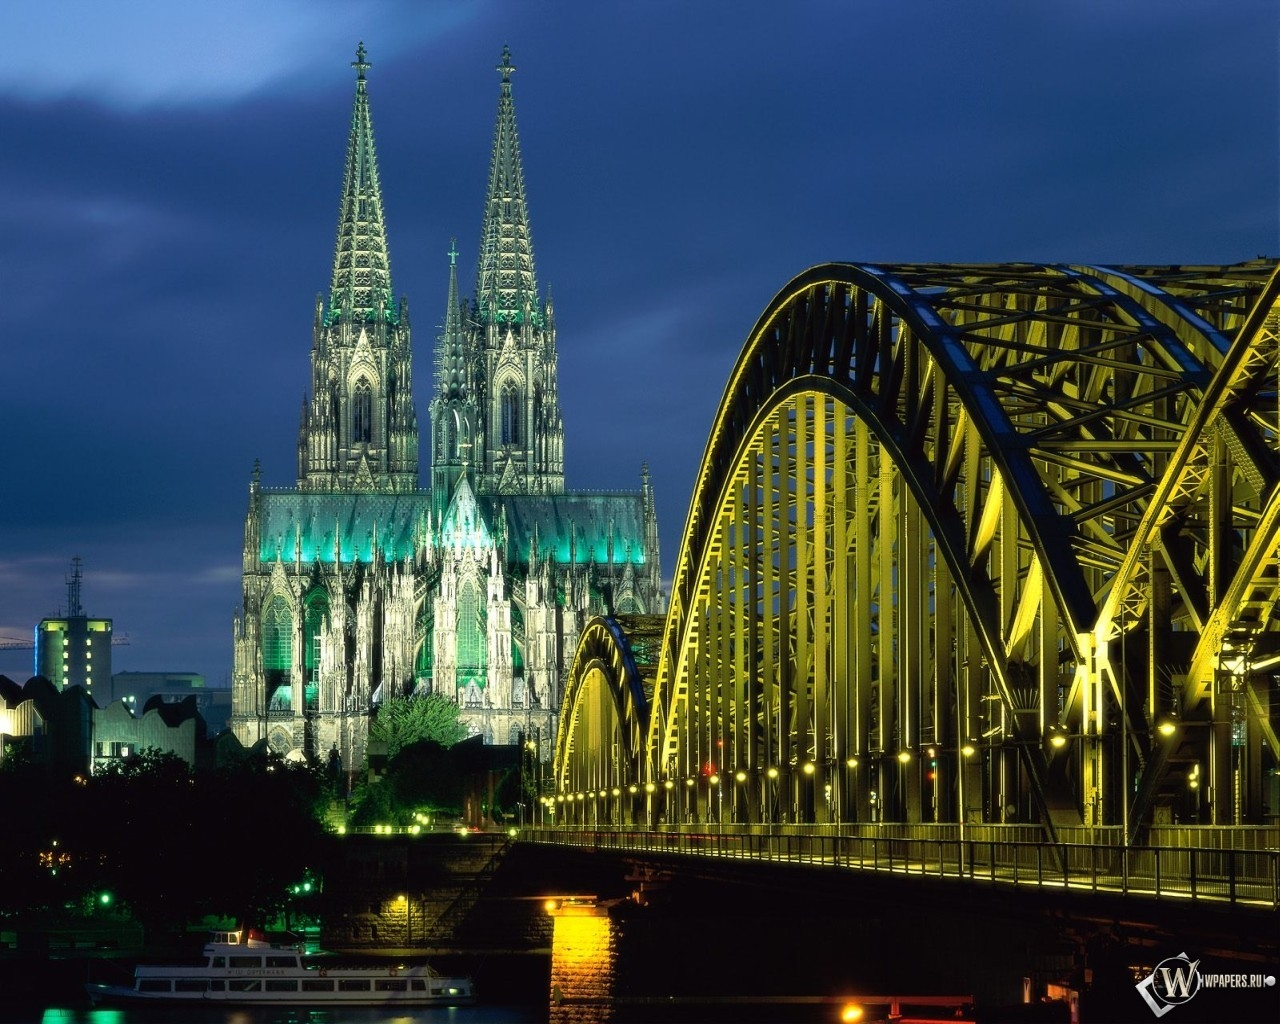 Cologne Cathedral and Hohenzollern Bridge Cologne - Germany 1280x1024